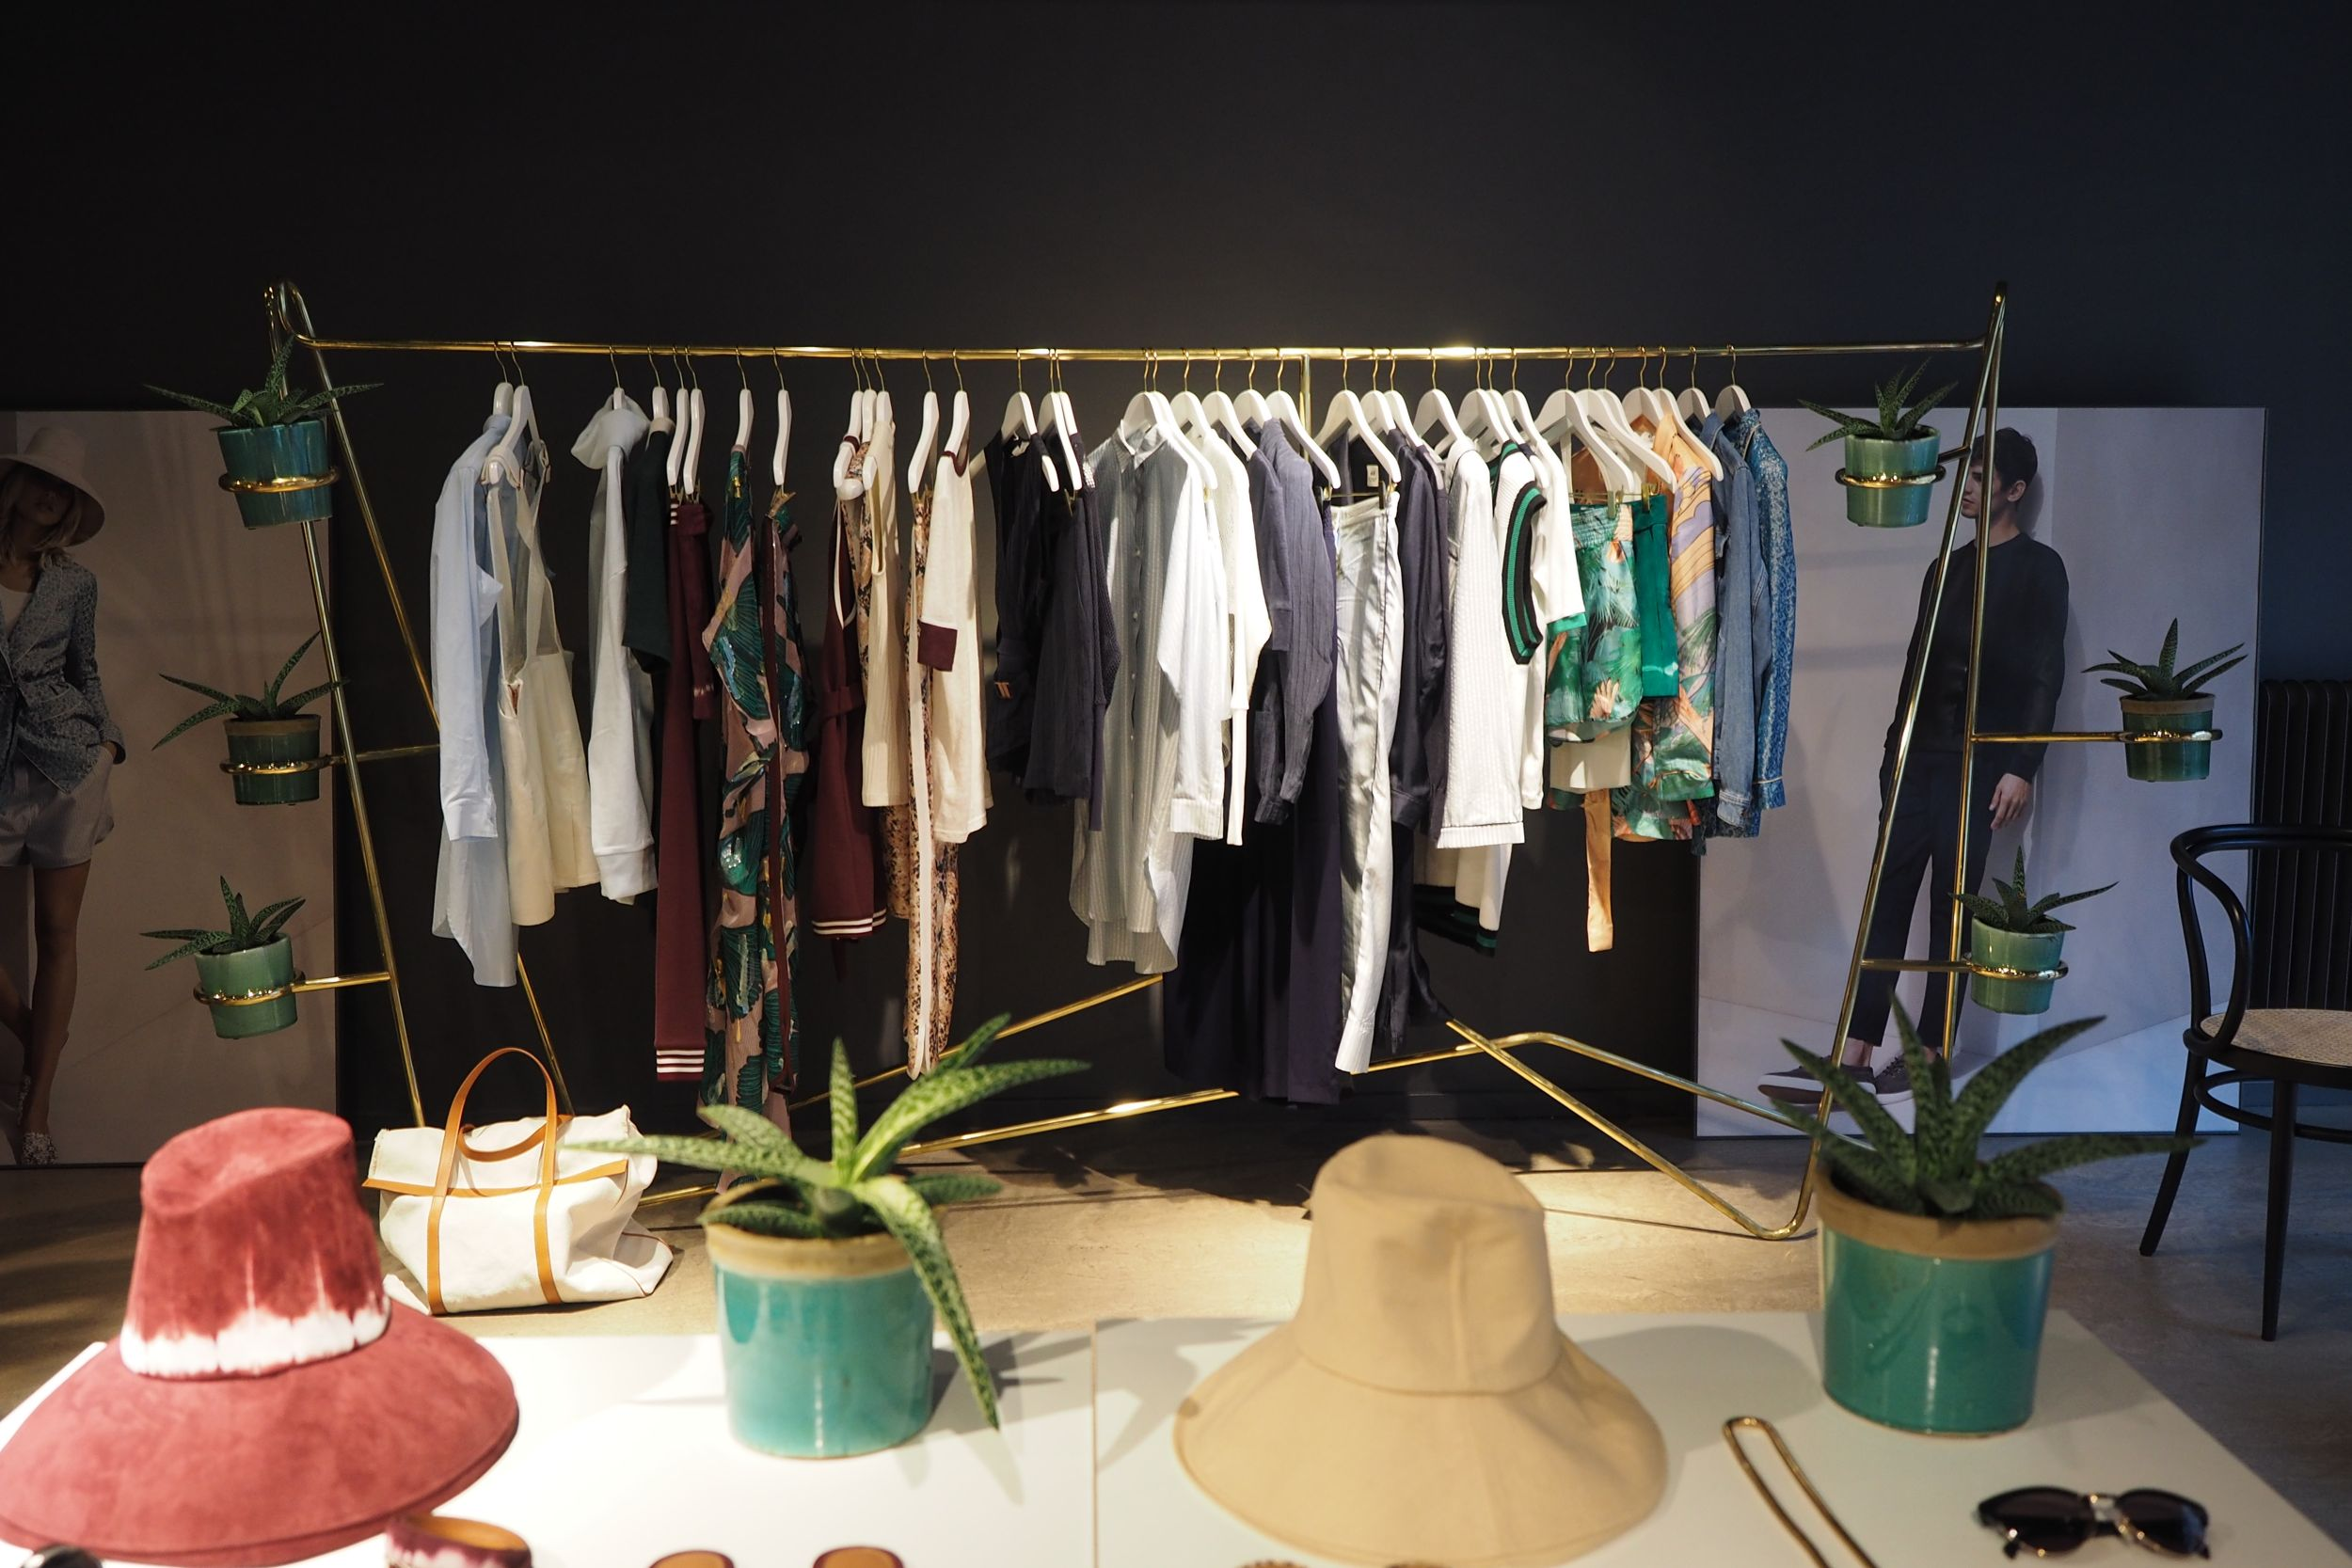 h&m, h&m conscious exclusive, stockholm h&m showroom, billur saatci, off ne giysem, street style